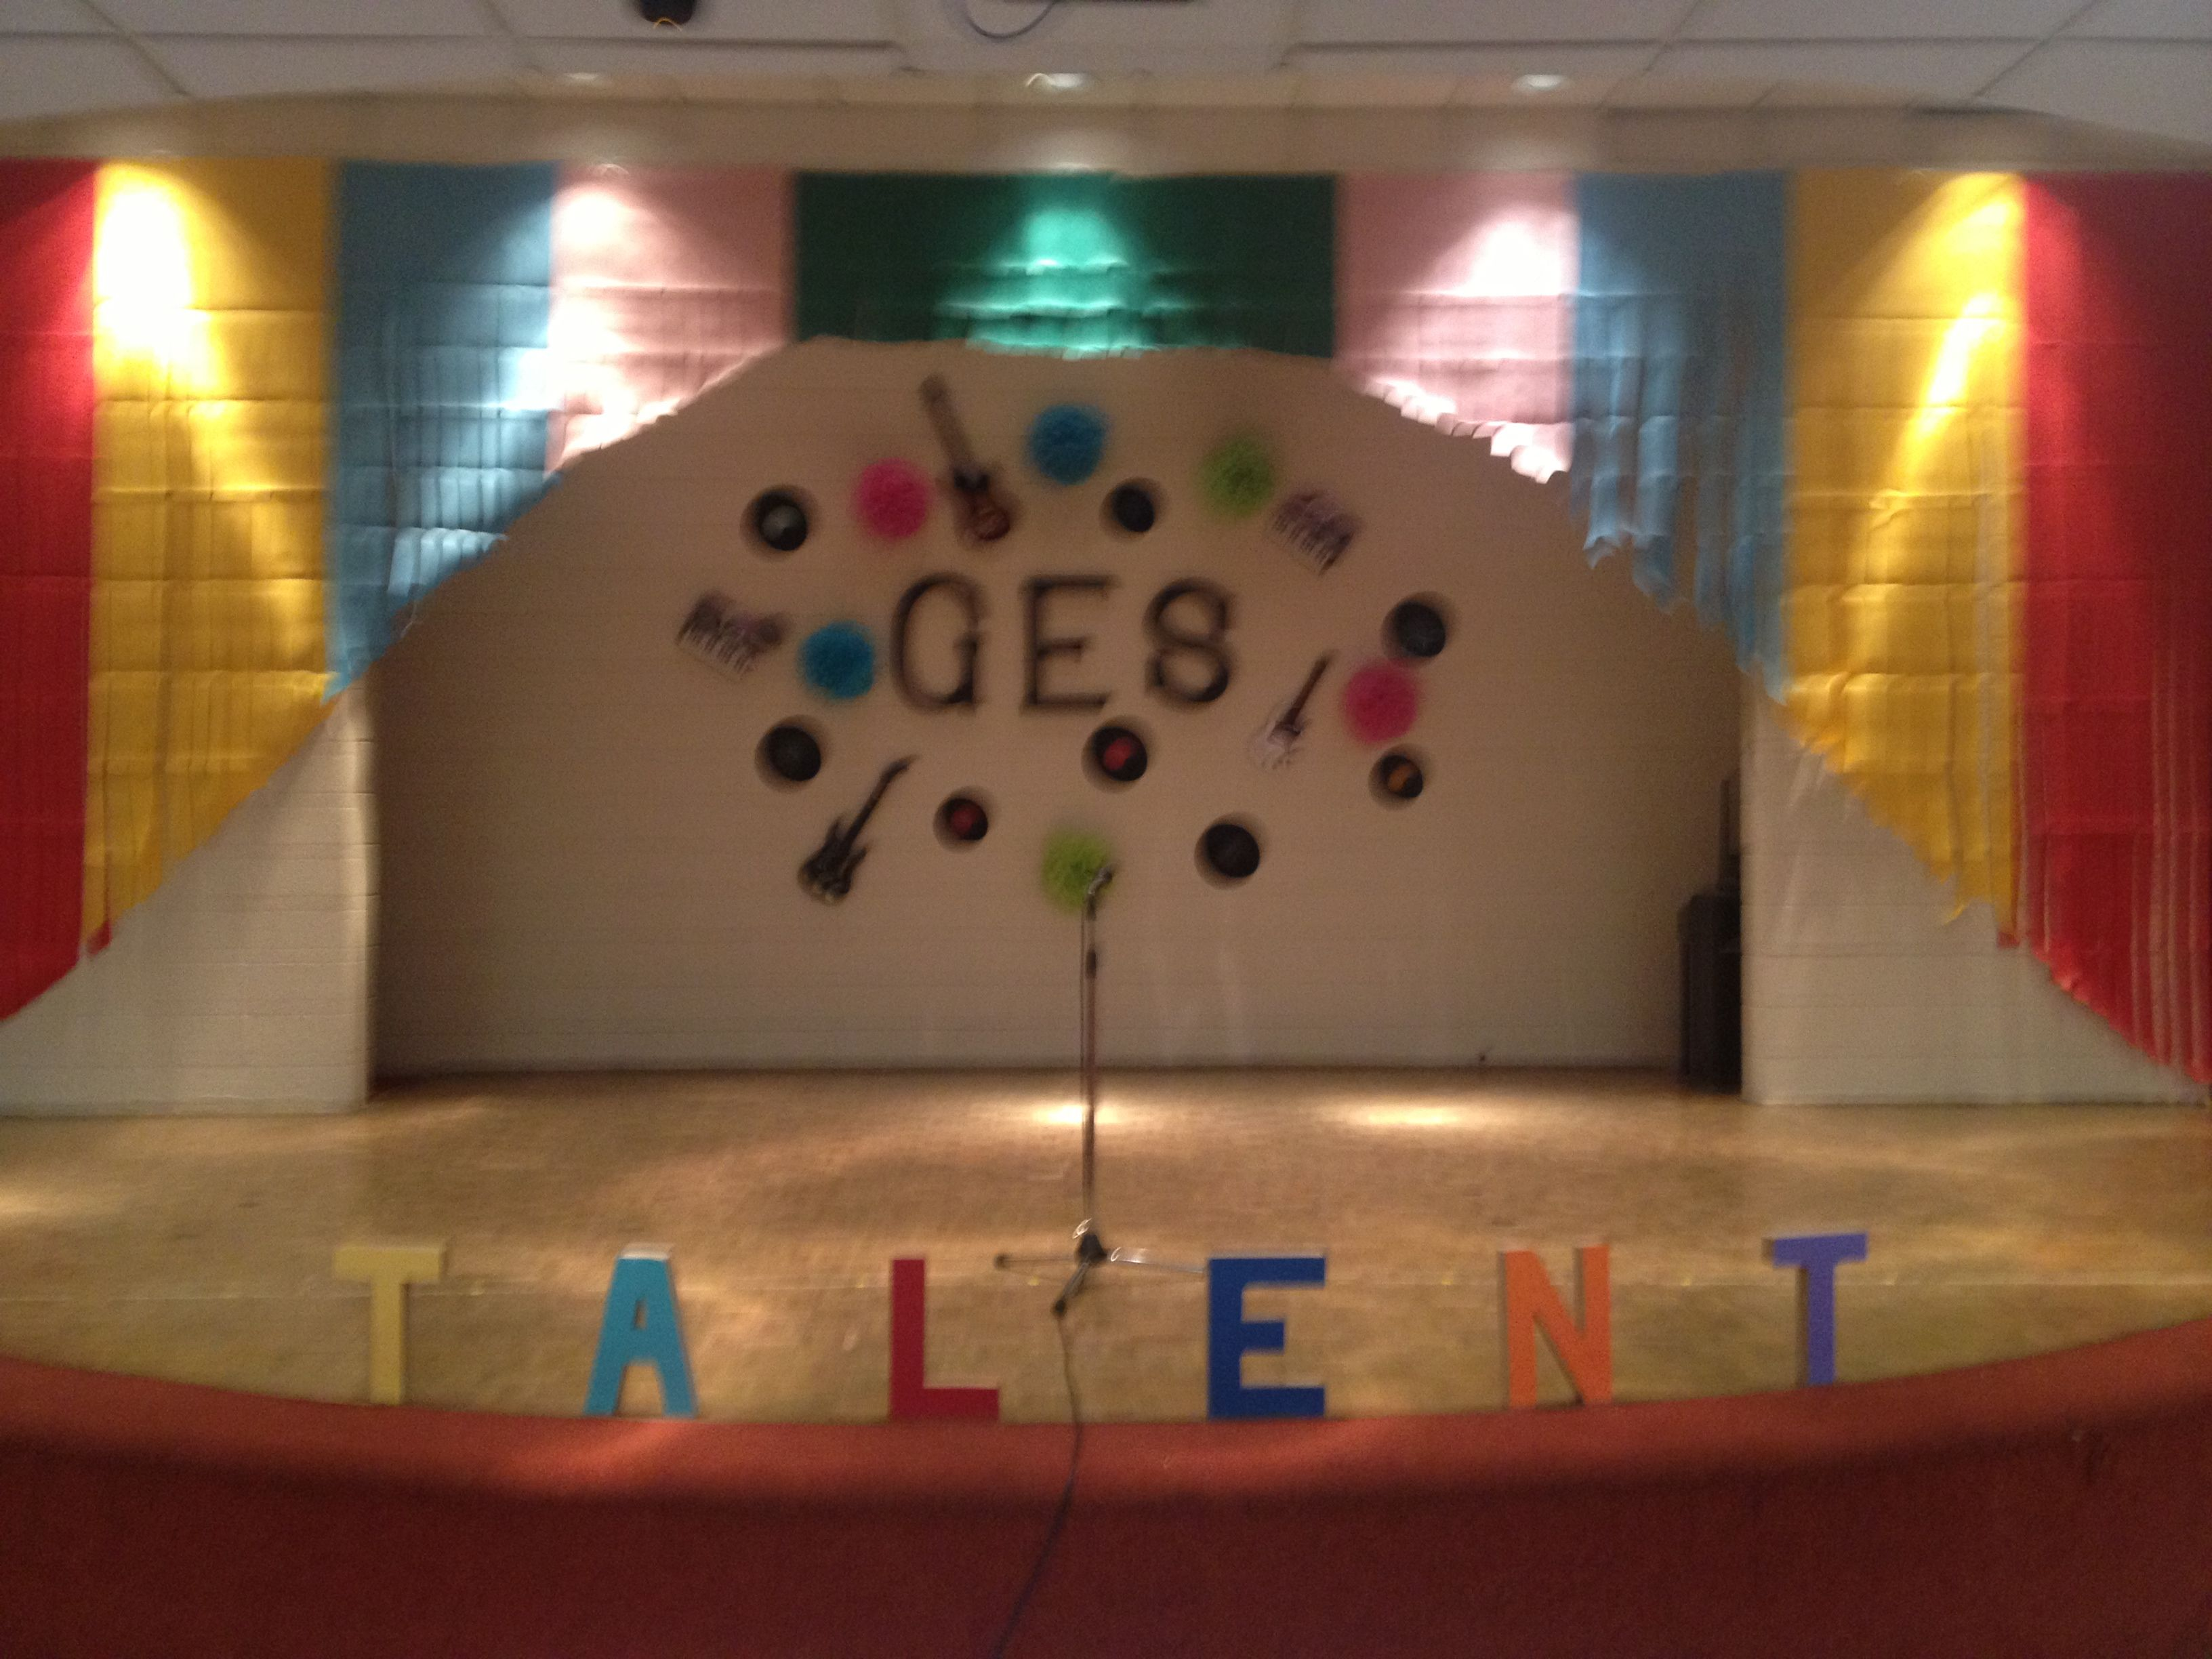 Talent Show Ideas for Adults. A talent show provides an opportunity to show others our creativity and talent. Whether the occasion is a family get-together, a fundraiser for a service organization, or a school or community sponsored event, good acts steal the show.